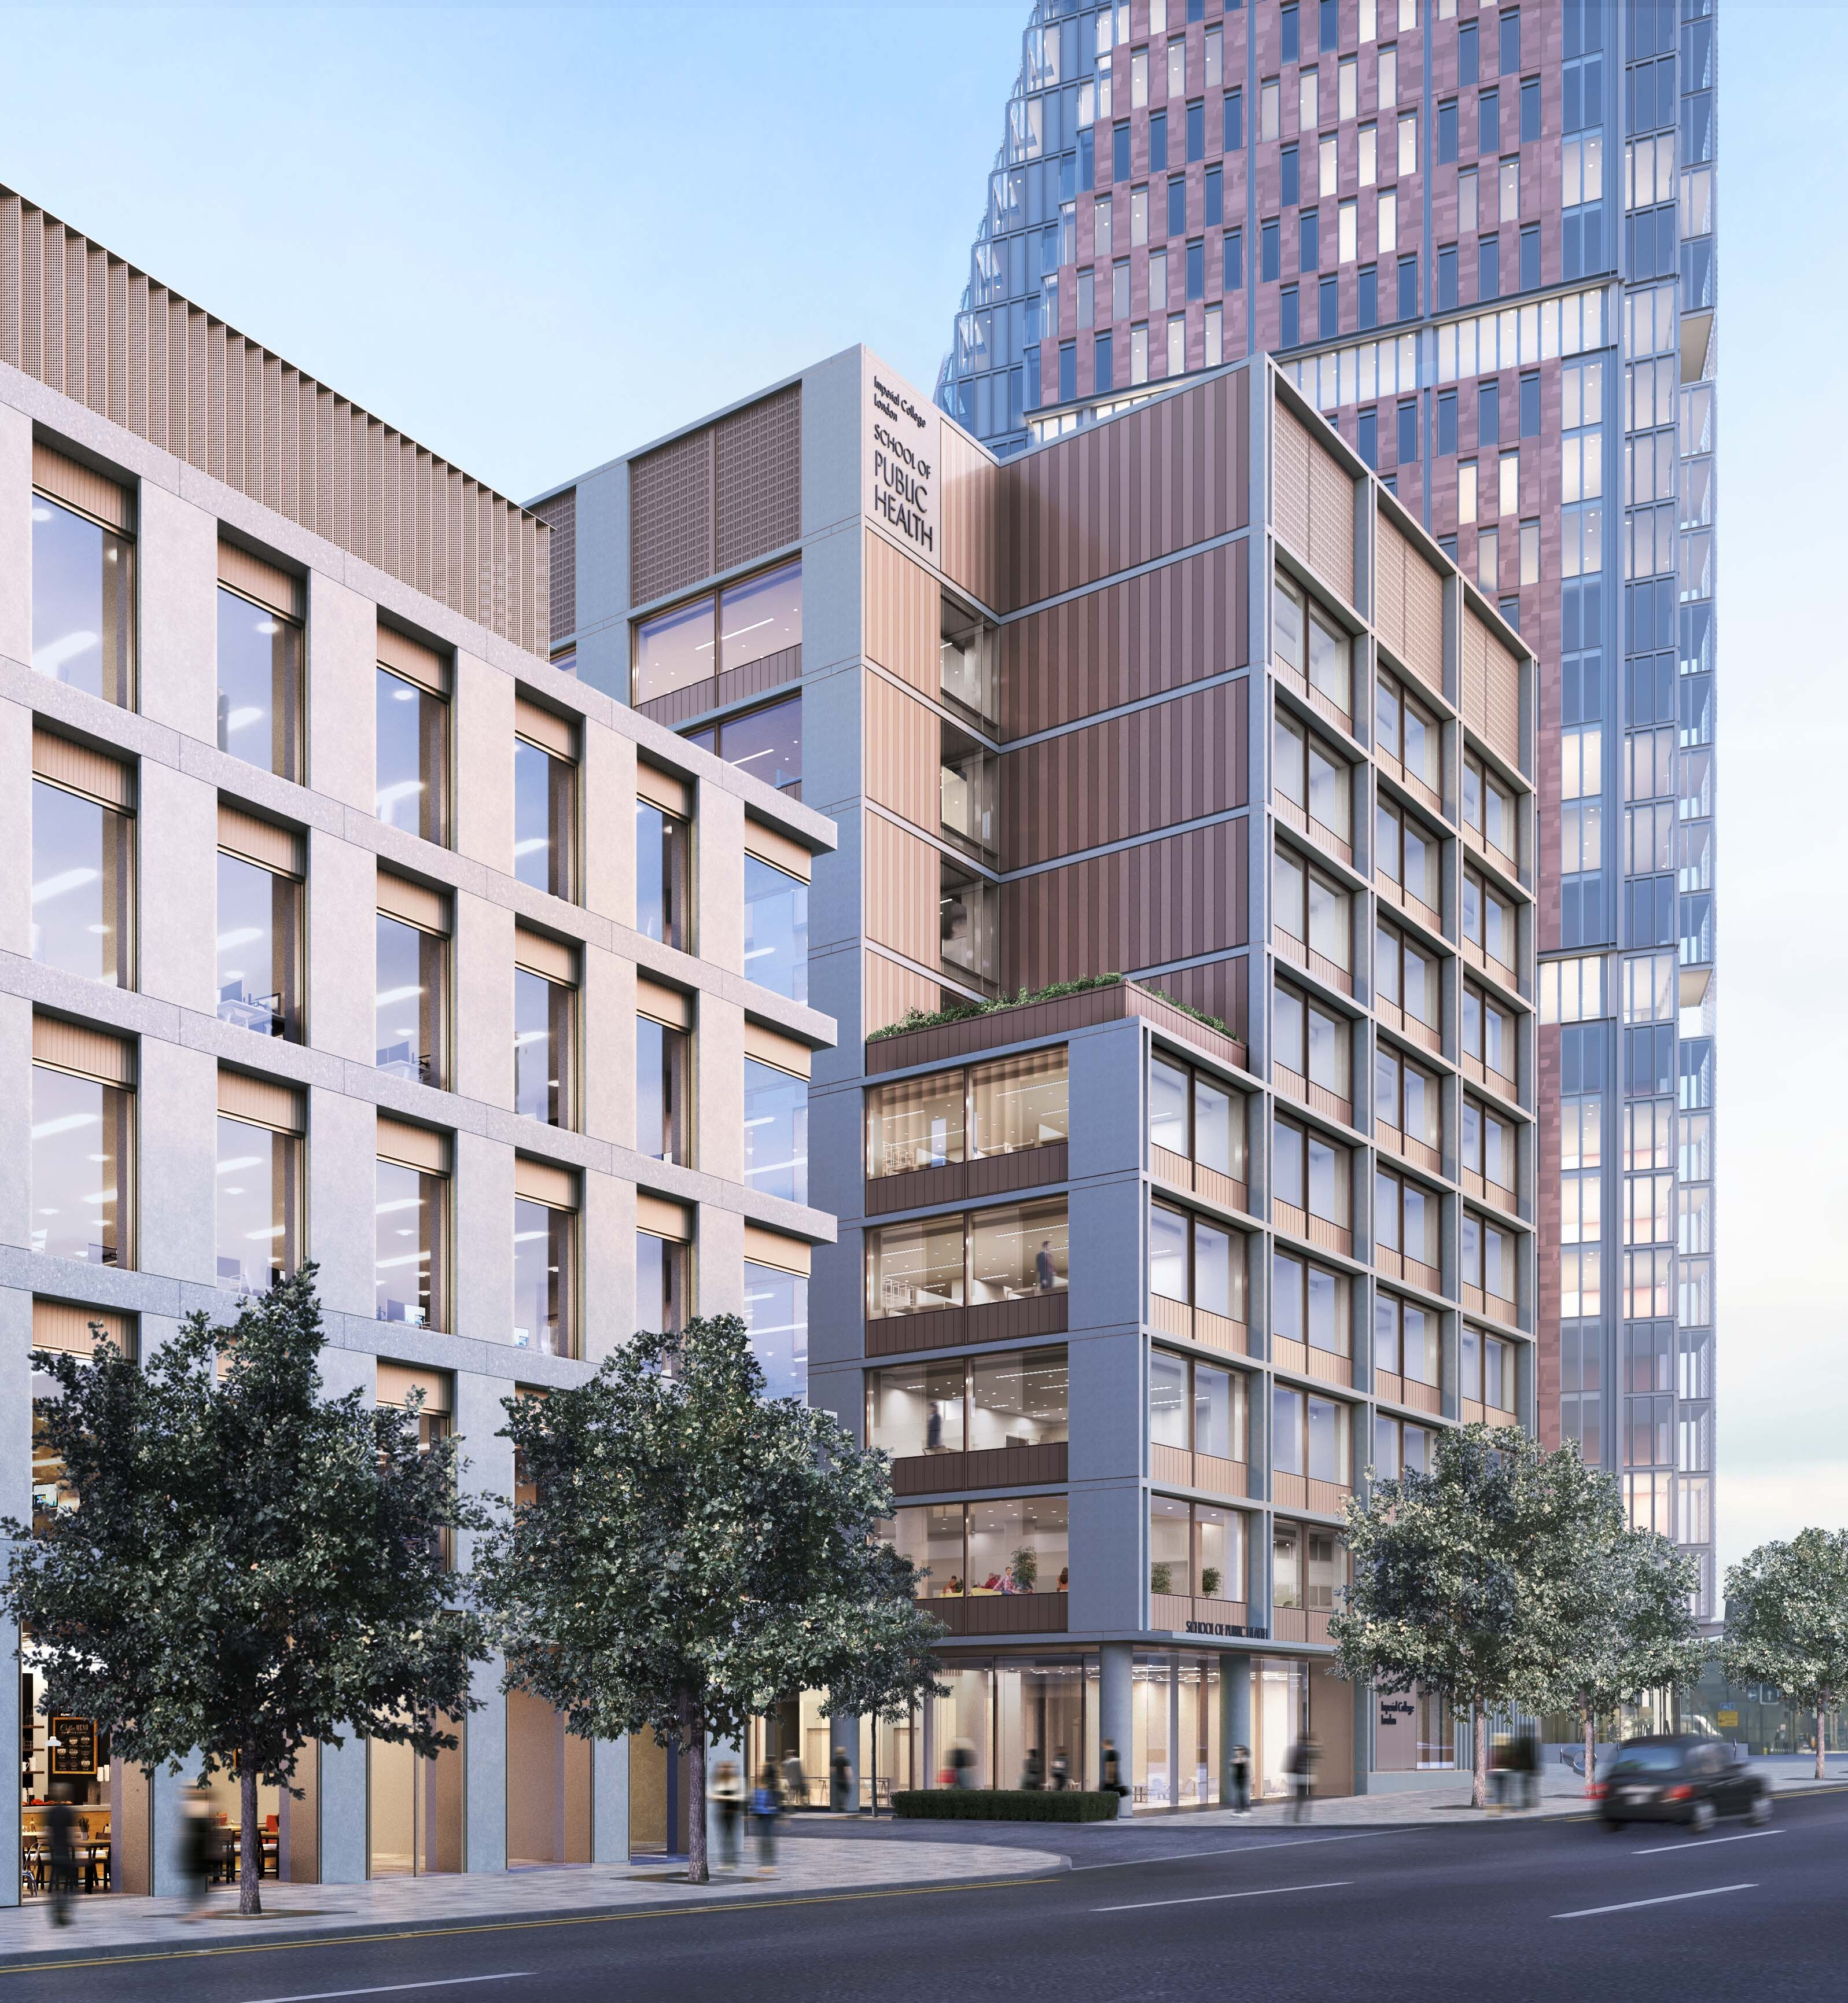 Imperial College London appoints GRAHAM as preferred contractor in two-stage tender image